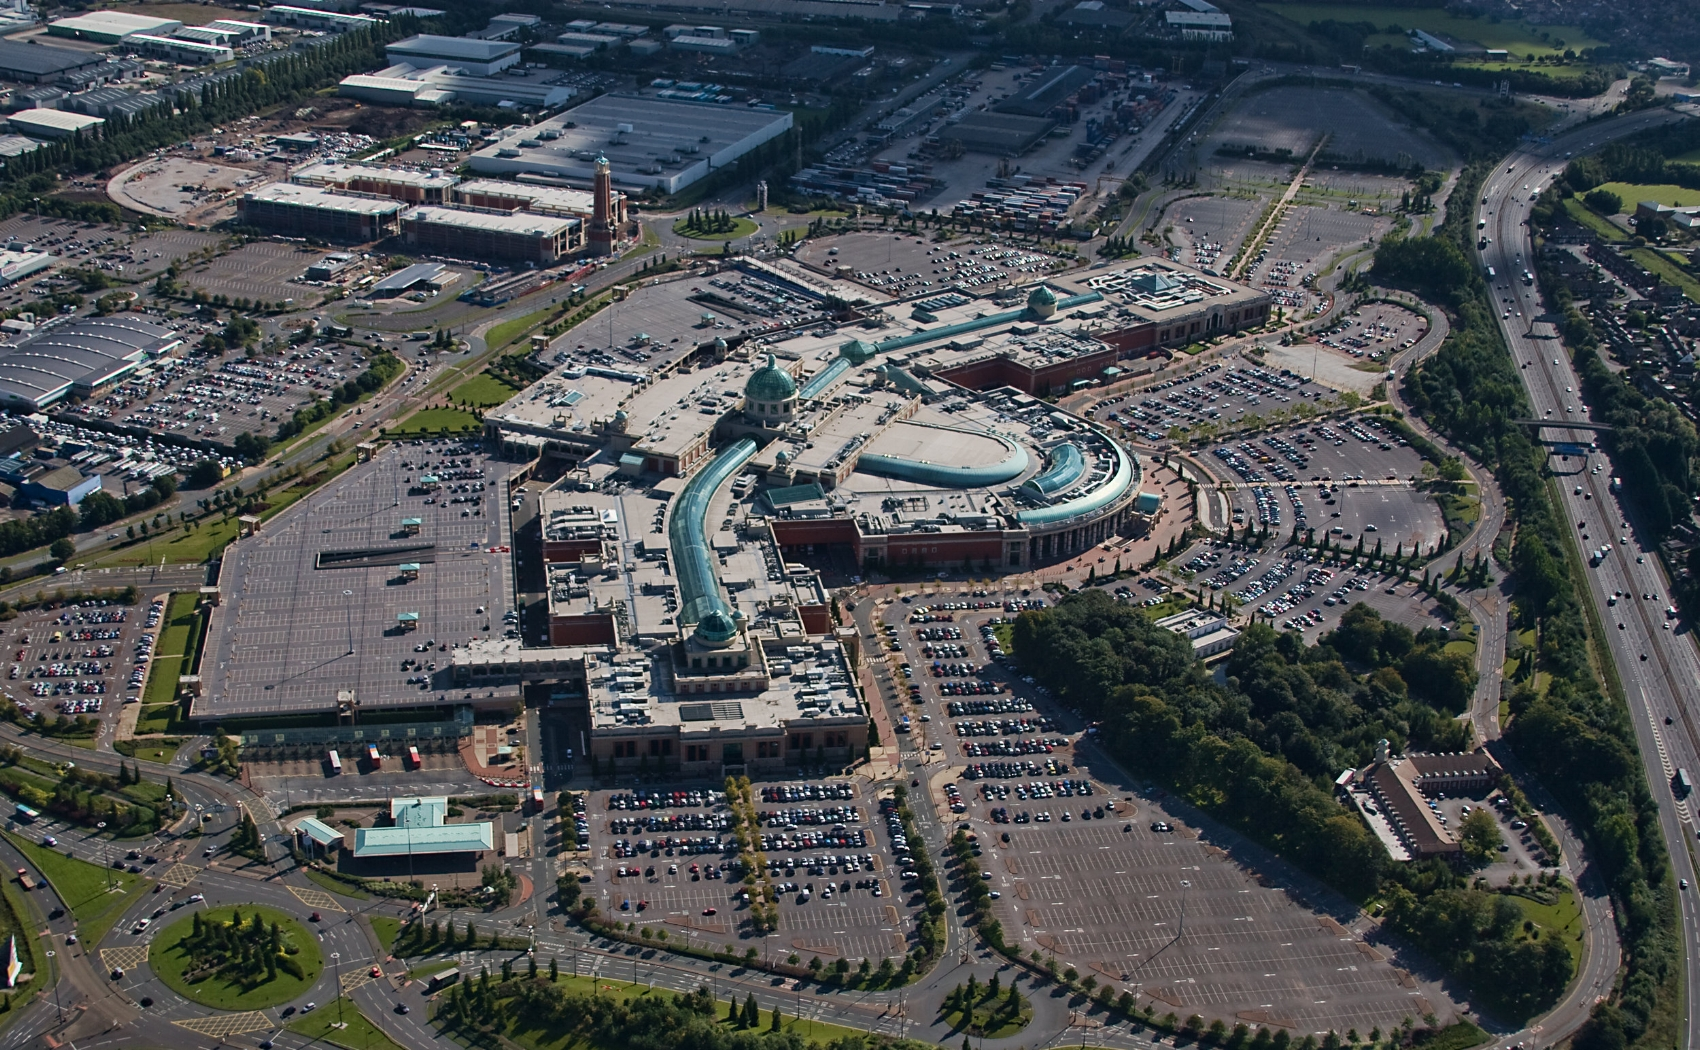 Ariel view of the Trafford Centre